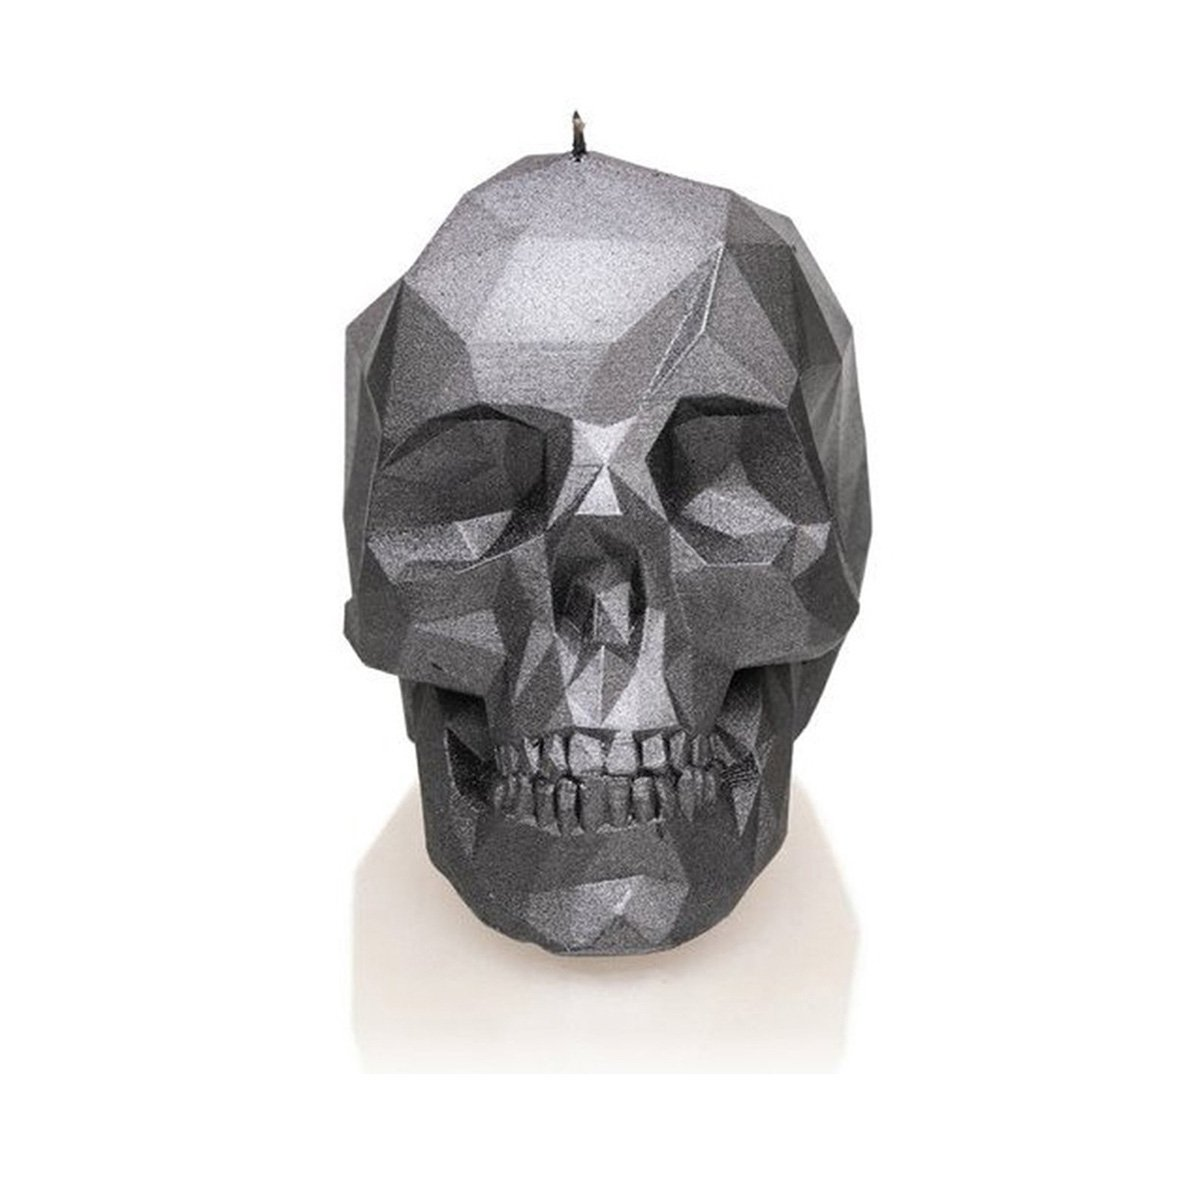 Candellana Candles Candellana- Skull Poly Candle-Steel,